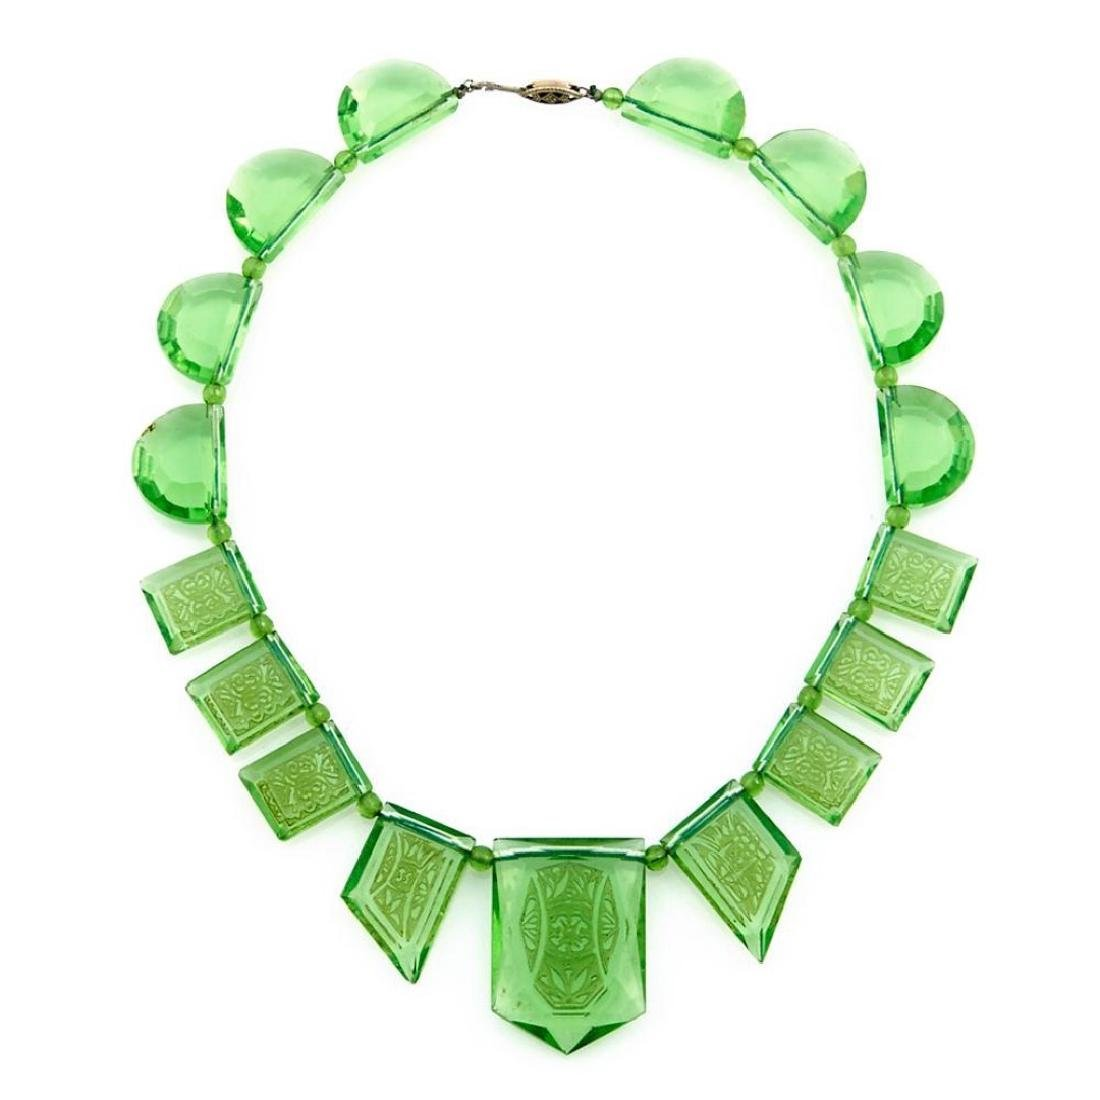 Rare art deco etched green glass necklace, circa 1920s